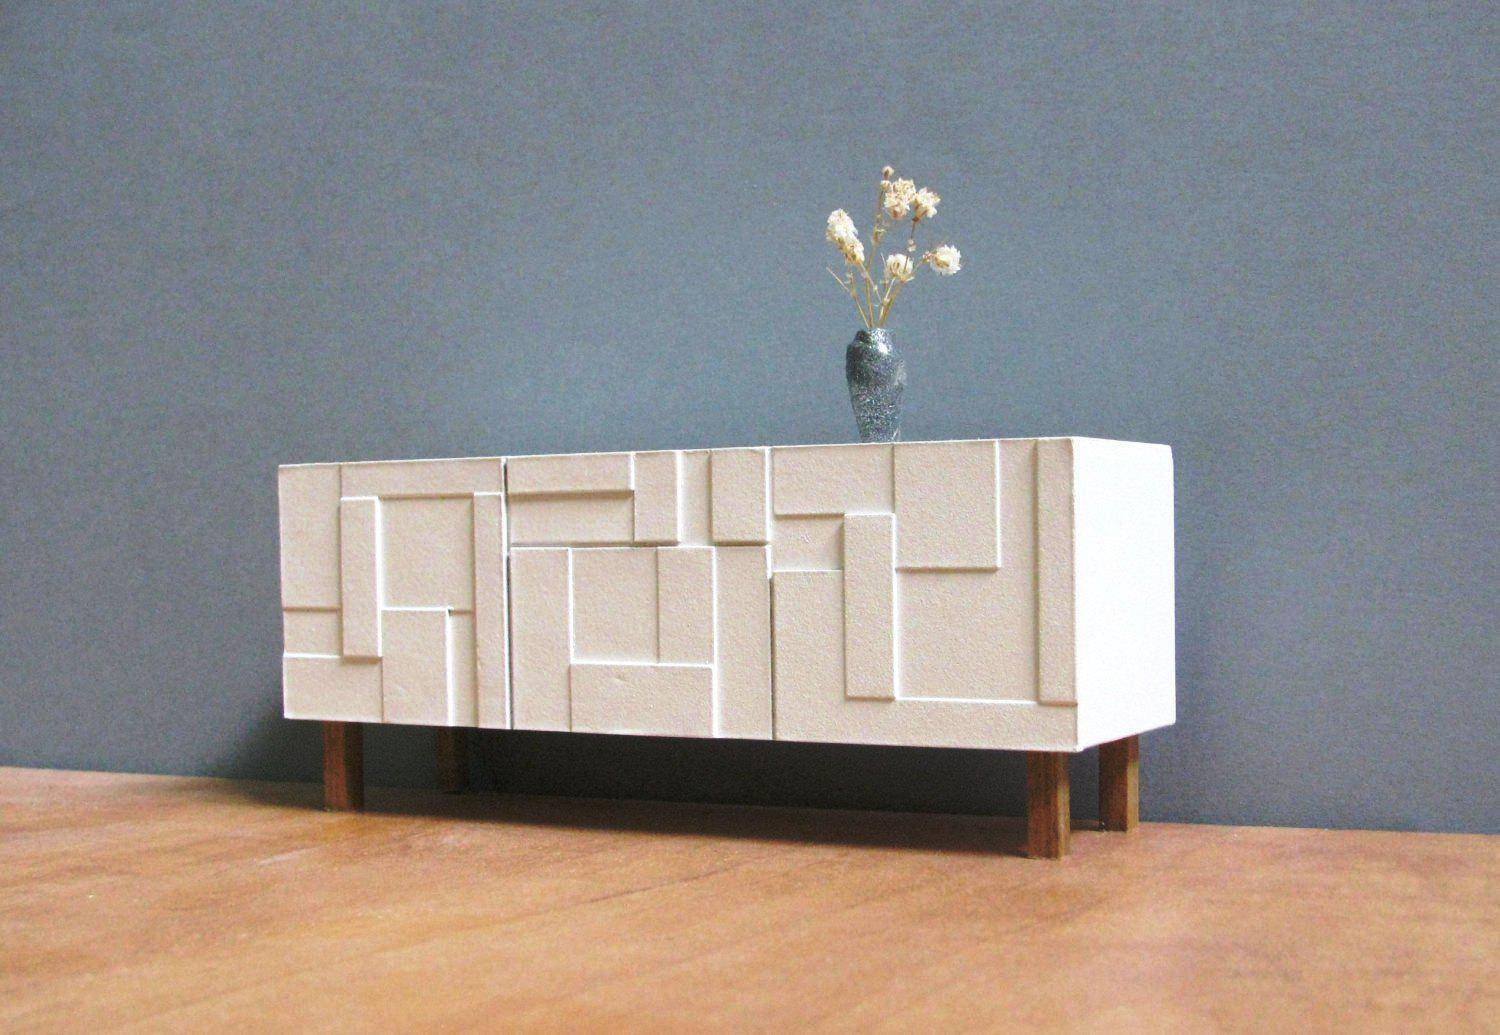 Modern Contemporary Credenza Media Sideboard Cabinet – Surripui With Contemporary Sideboard Cabinet (View 11 of 20)